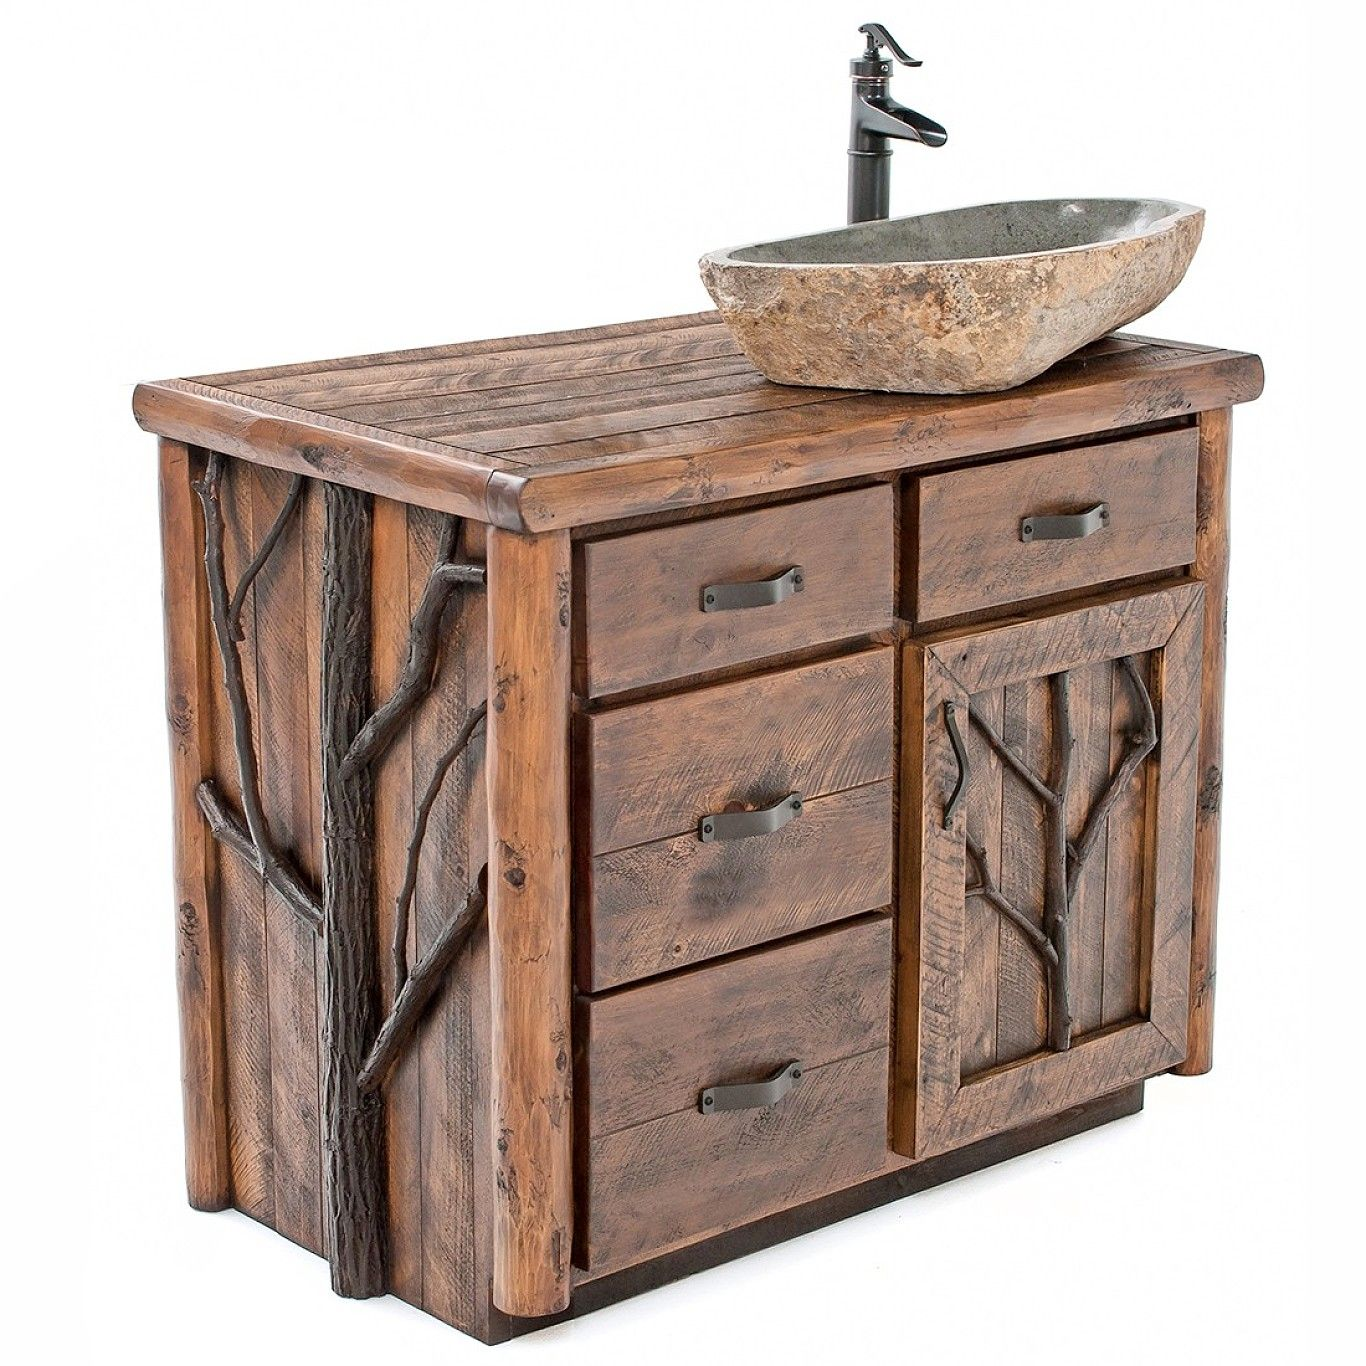 Bathroom Vanity San Diego Bathroom Bath Vanities San Diego Mexican Bathroom Vanity Reclaimed